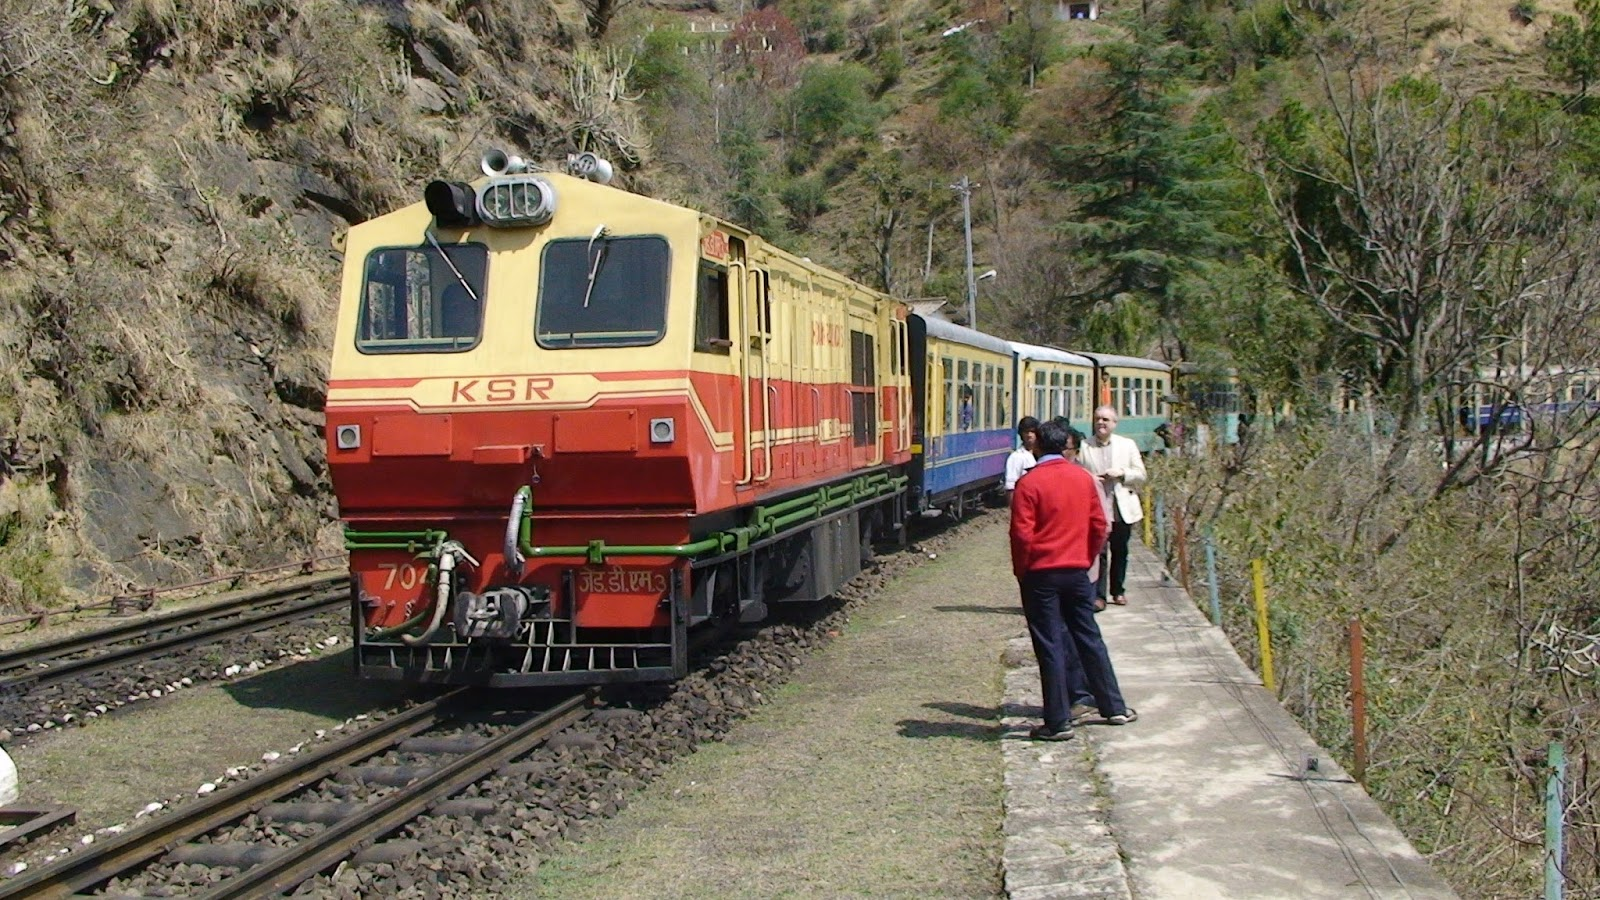 Shimla photos, images and wallpapers, hd images, near by images.